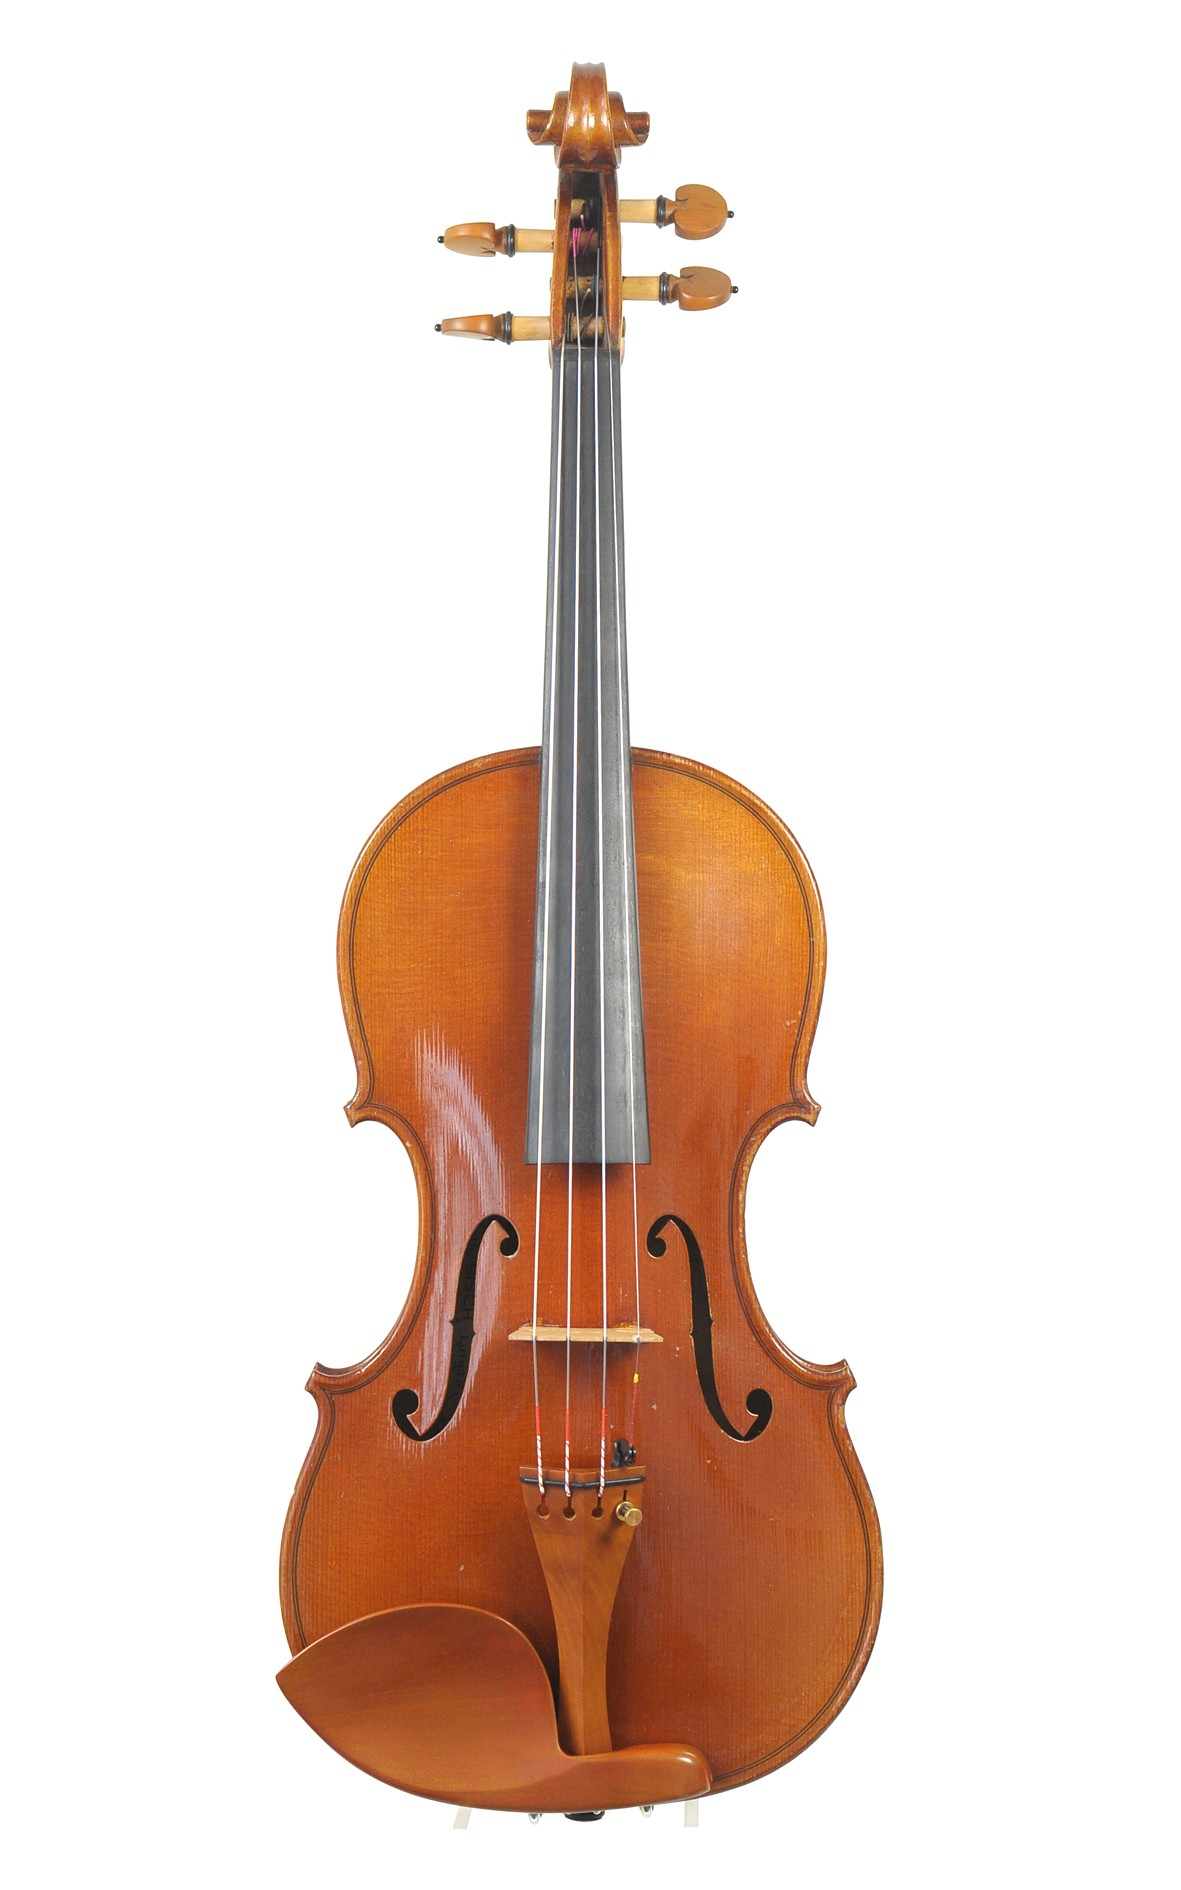 French master violin, Paul Bisch - top